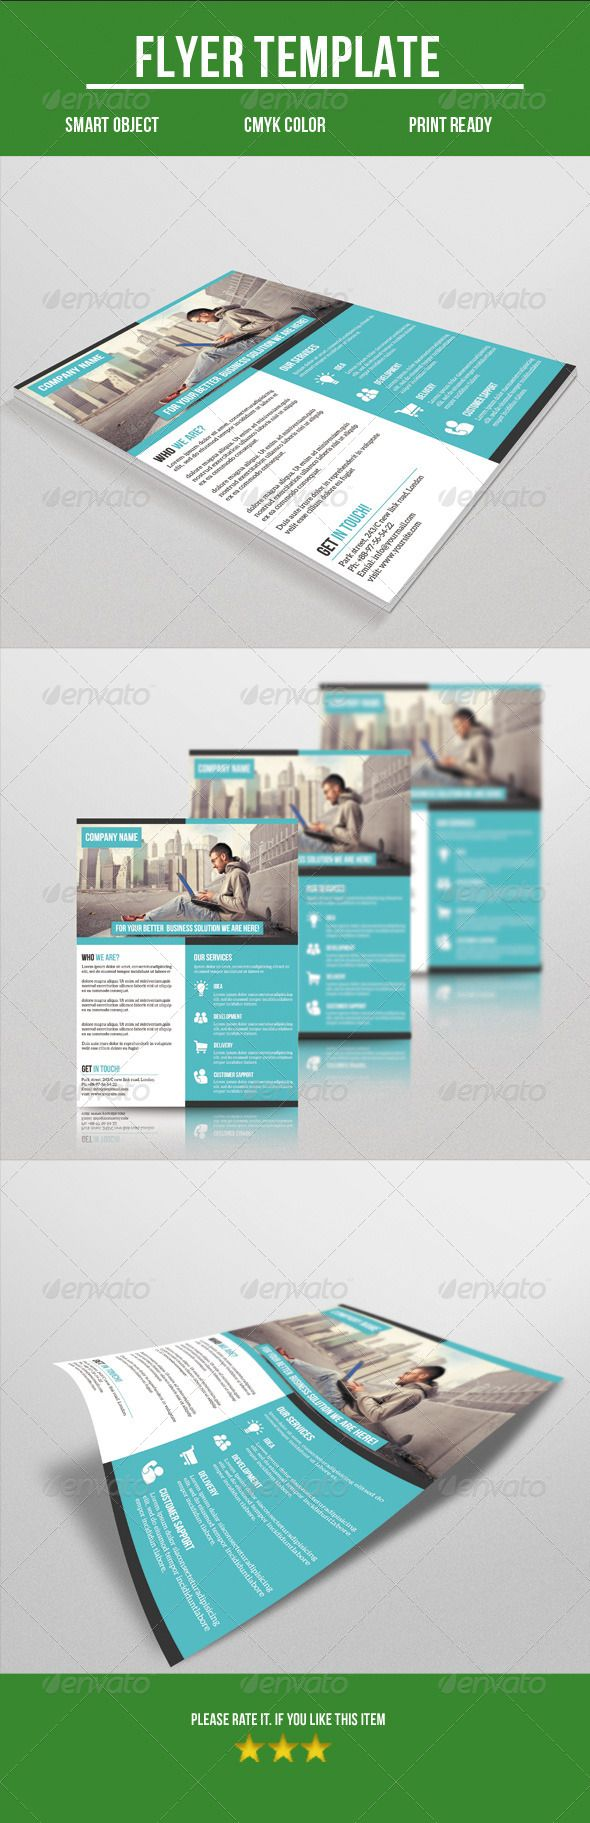 126 best images about company fact sheet on pinterest